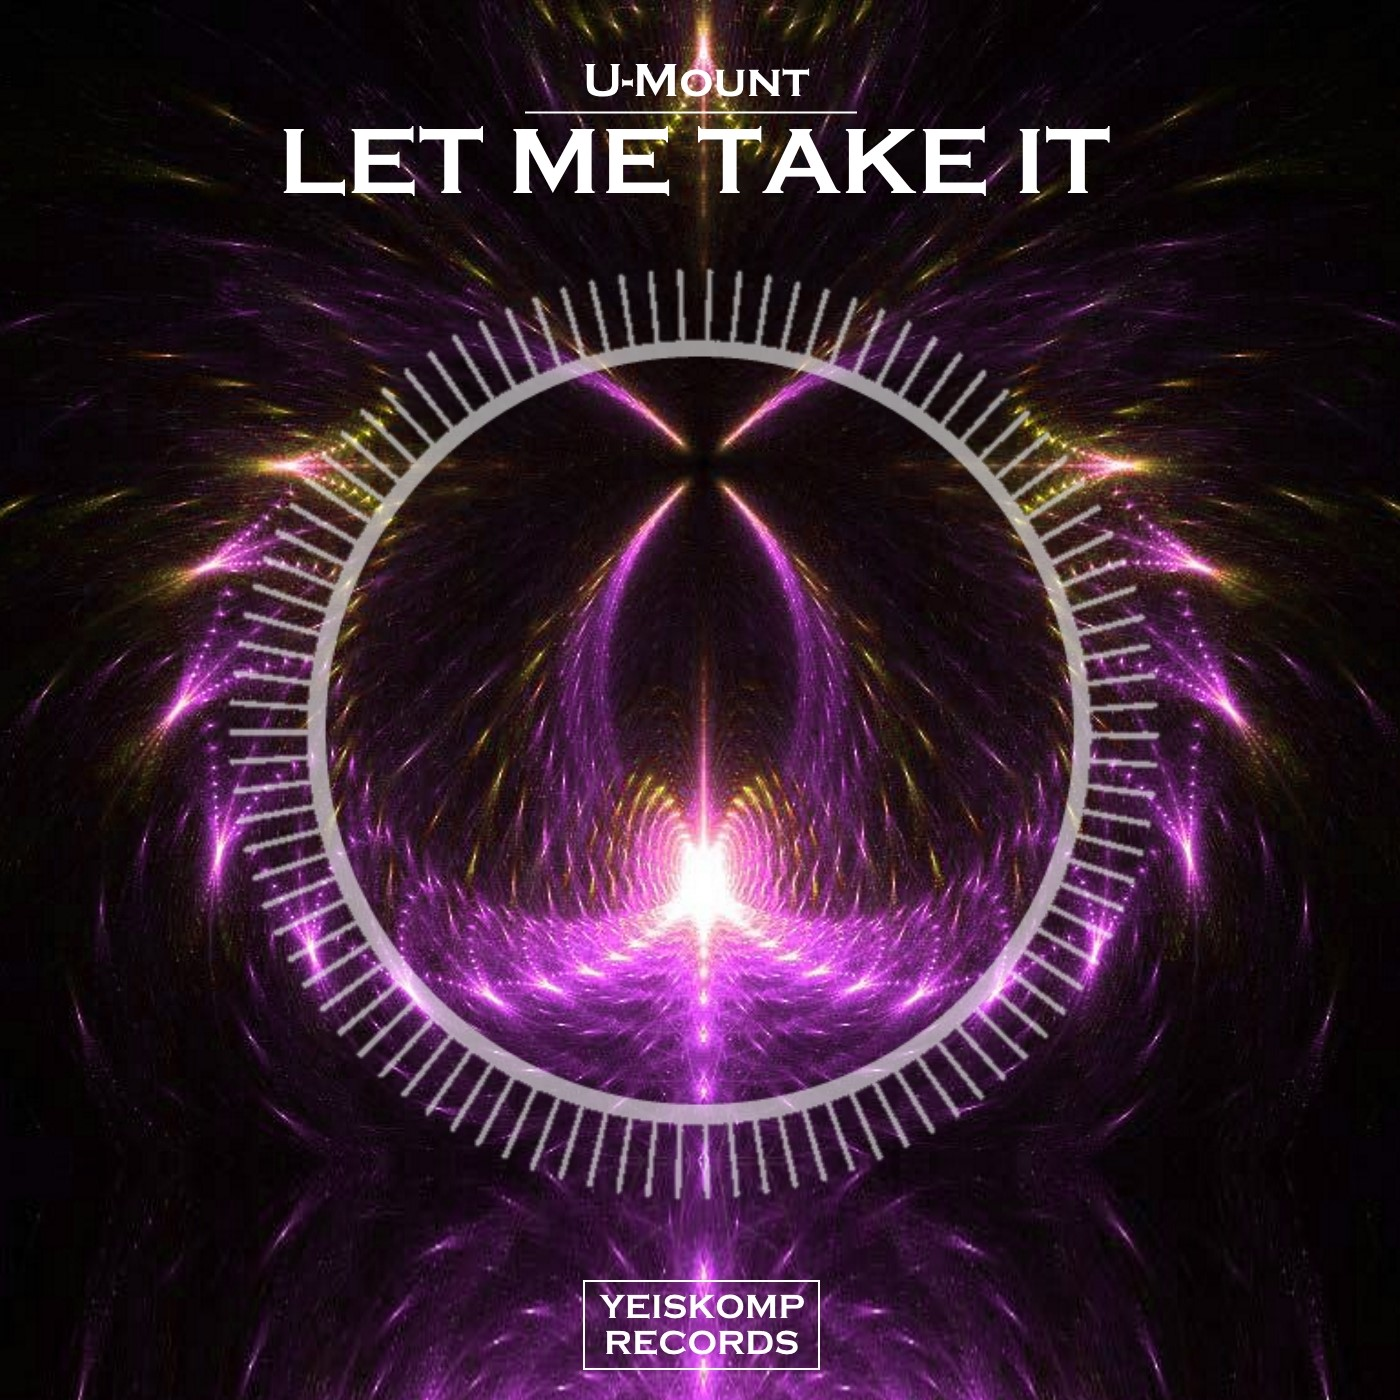 U-Mount - Let Me Take It (Original Mix)